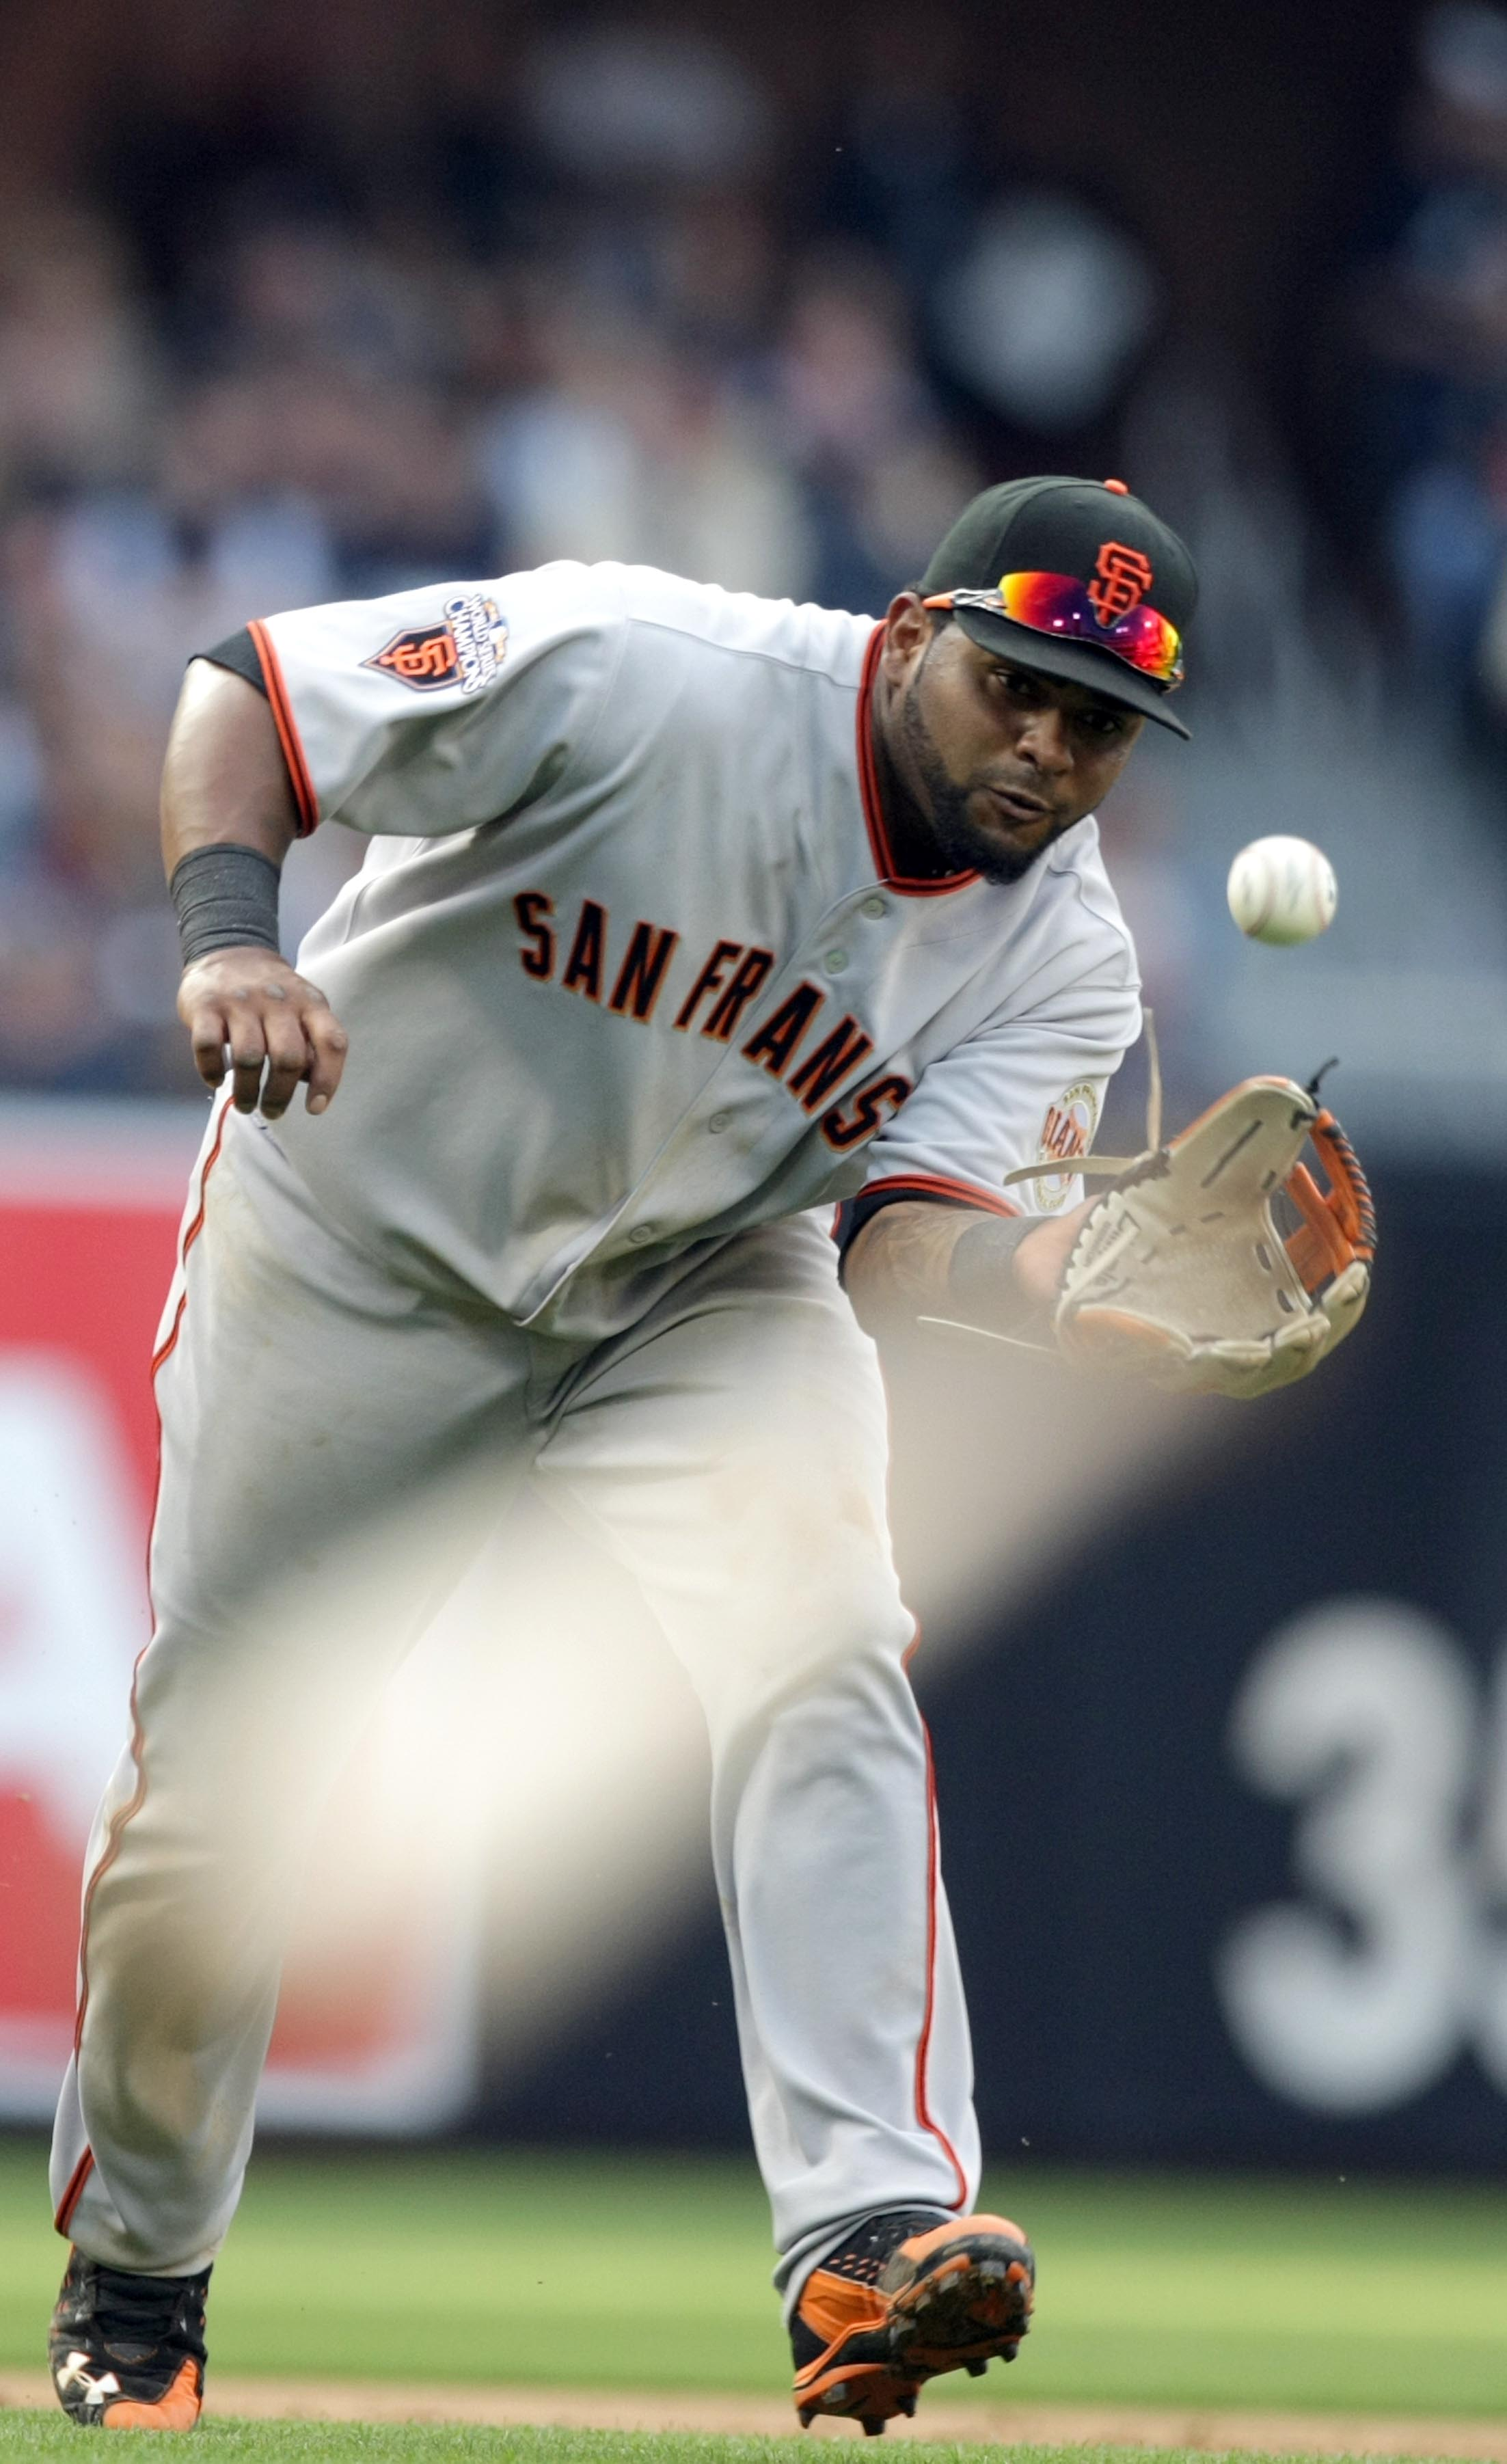 SAN DIEGO, CA - APRIL 5:  Pablo Sandoval #48 of the San Francisco Giants fields a ball against the San Diego Padres during their MLB Game at Petco Park on April 5, 2011 in San Diego, California. (Photo by Donald Miralle/Getty Images)